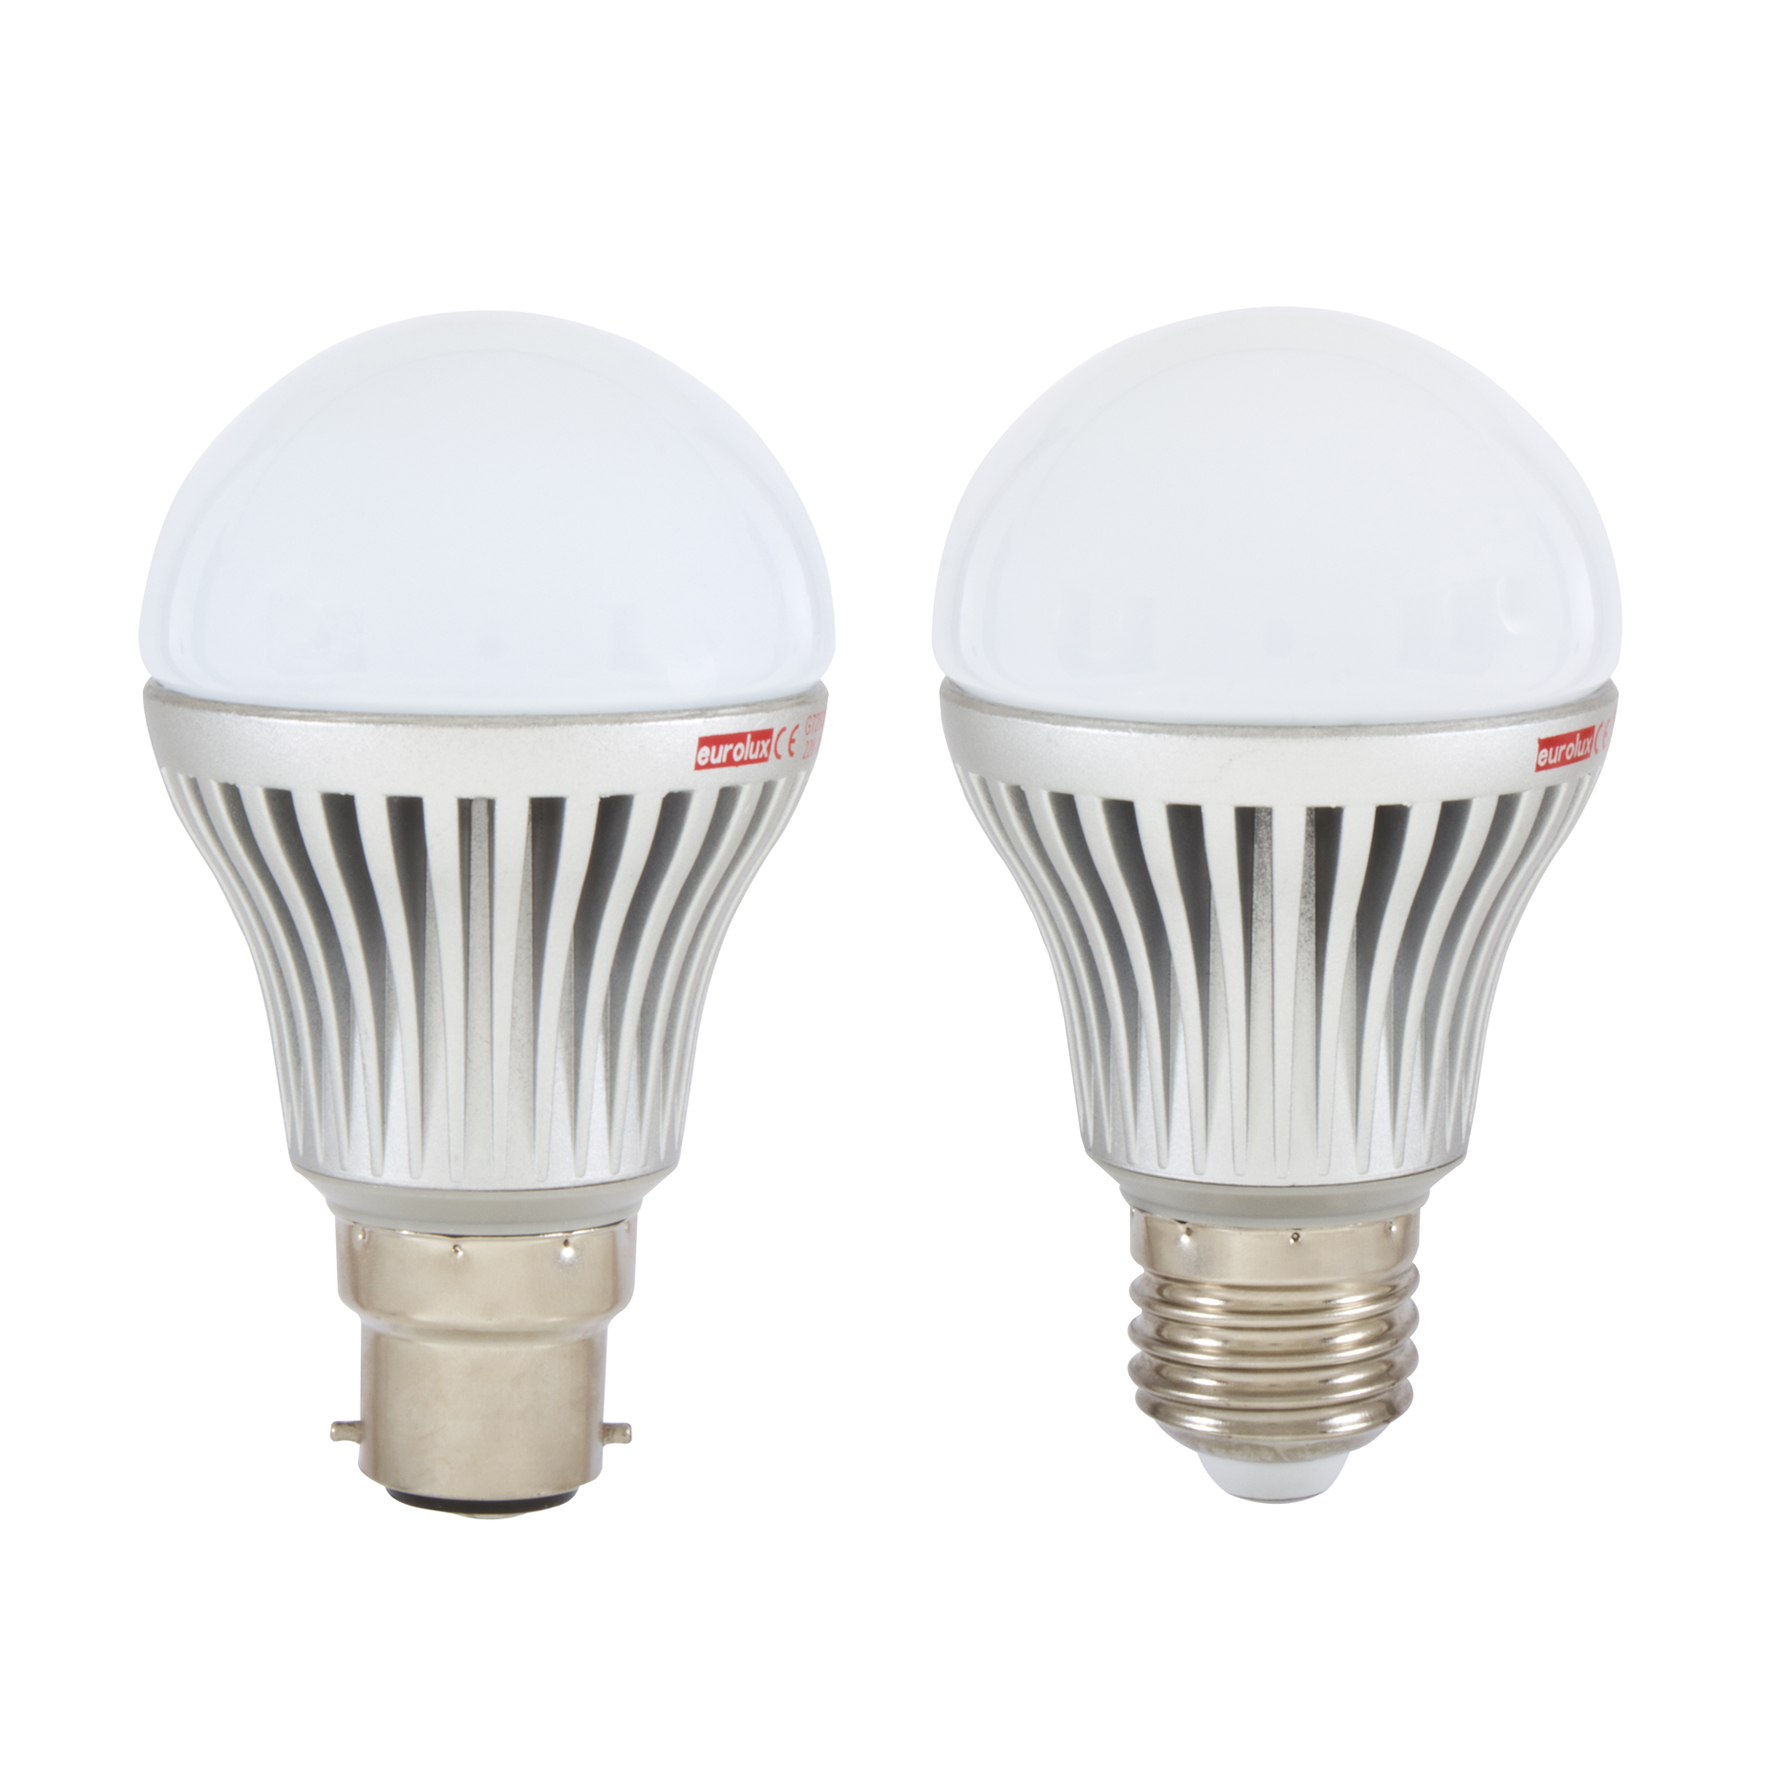 LED globes from Eurolux